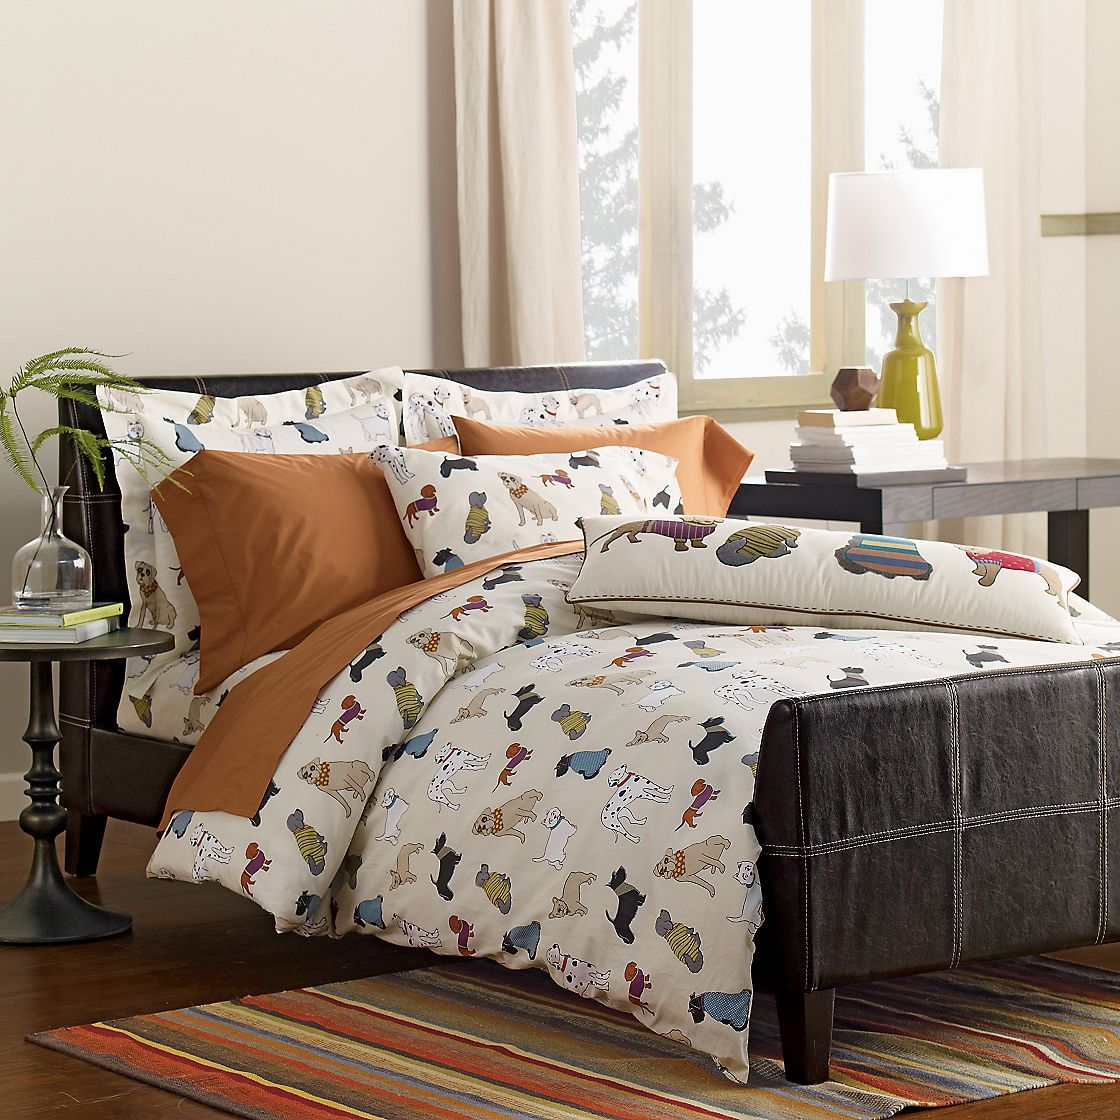 Dog Show Percale Duvet Cover/Comforter Cover And Sham